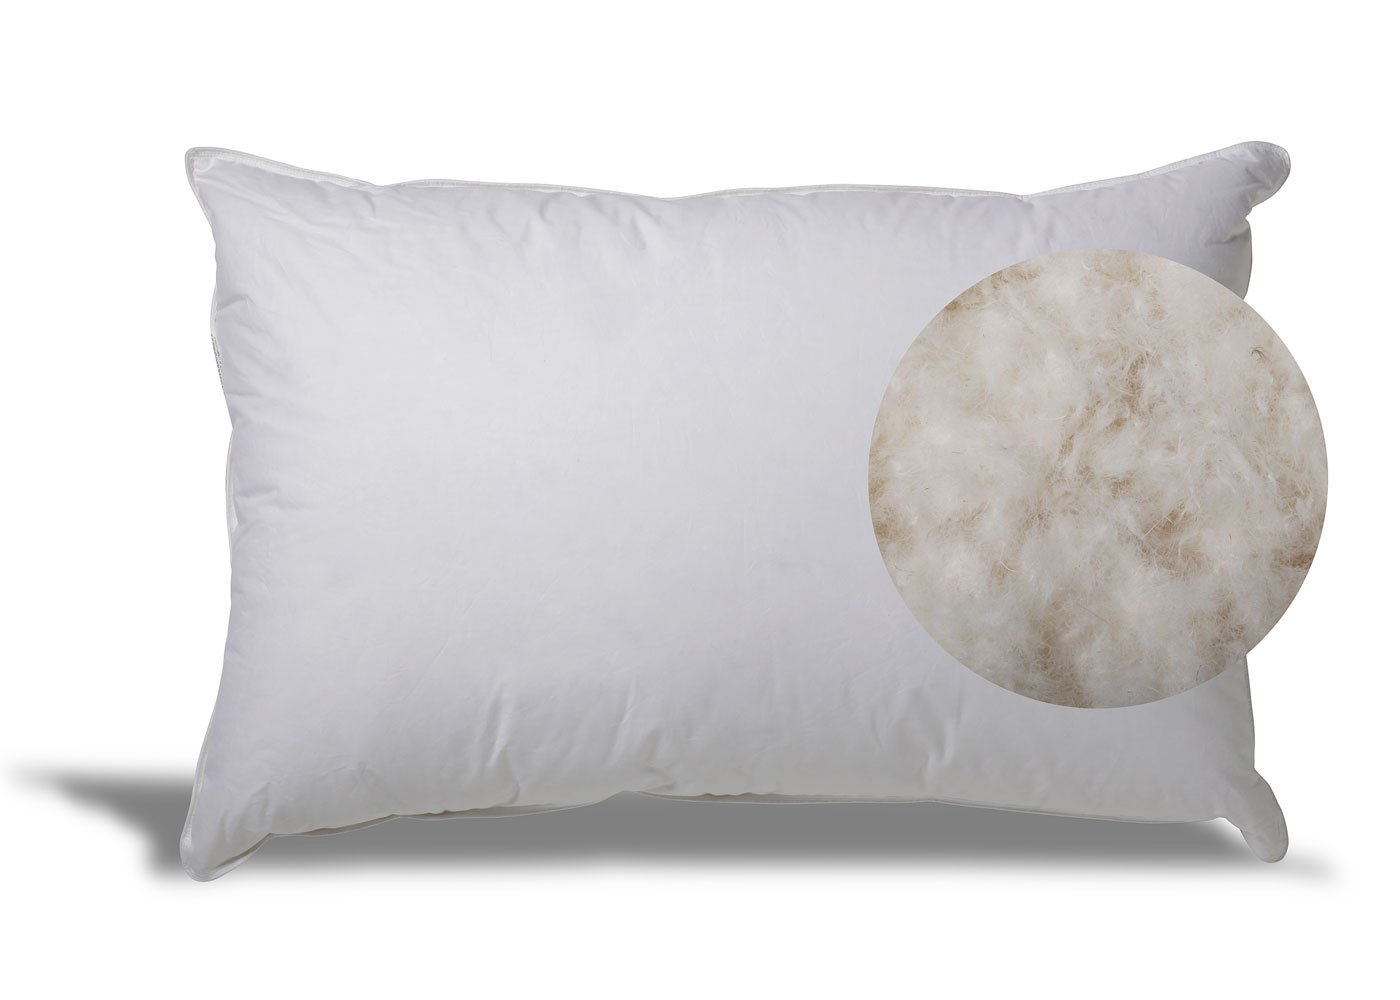 Different Types Of Pillow Fill And Why They Matter